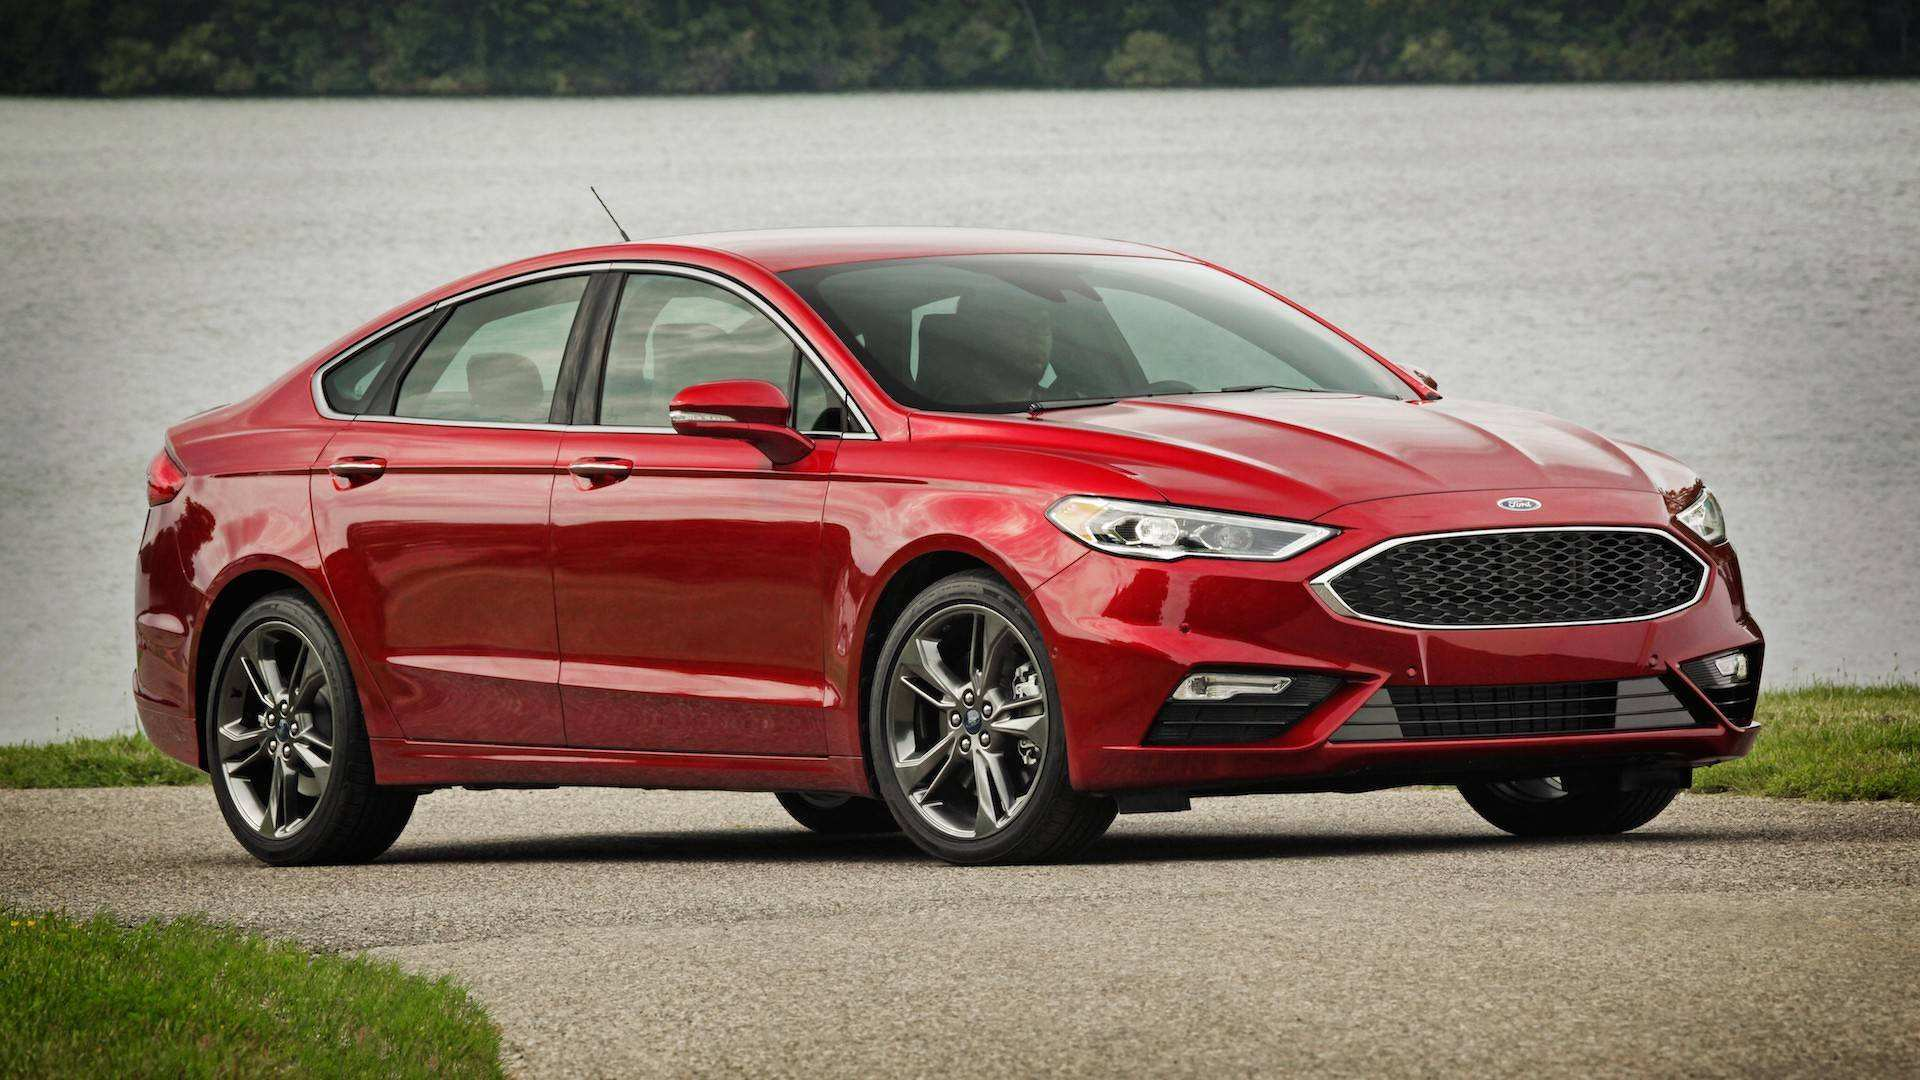 82 The 2020 The Spy Shots Ford Fusion Price